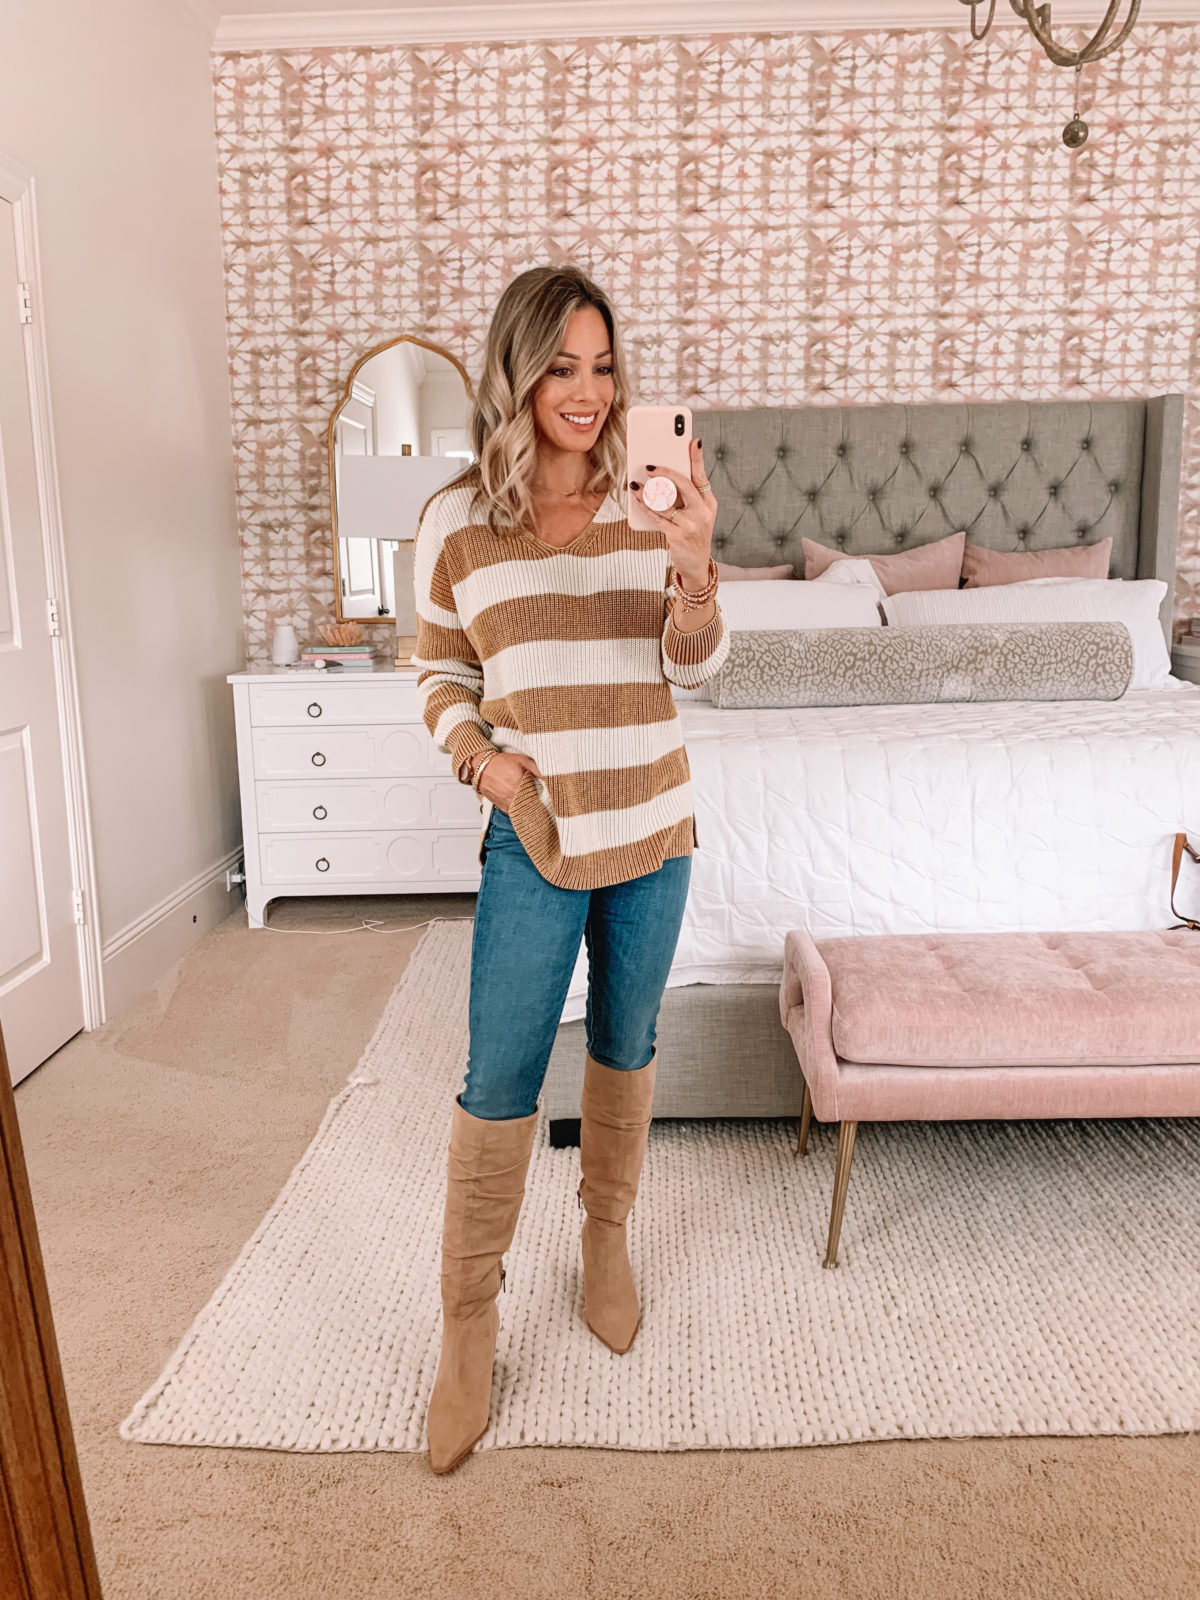 Amazon Fashion Faves, Striped Sweater Tunic, Jeans, Knee High Boots